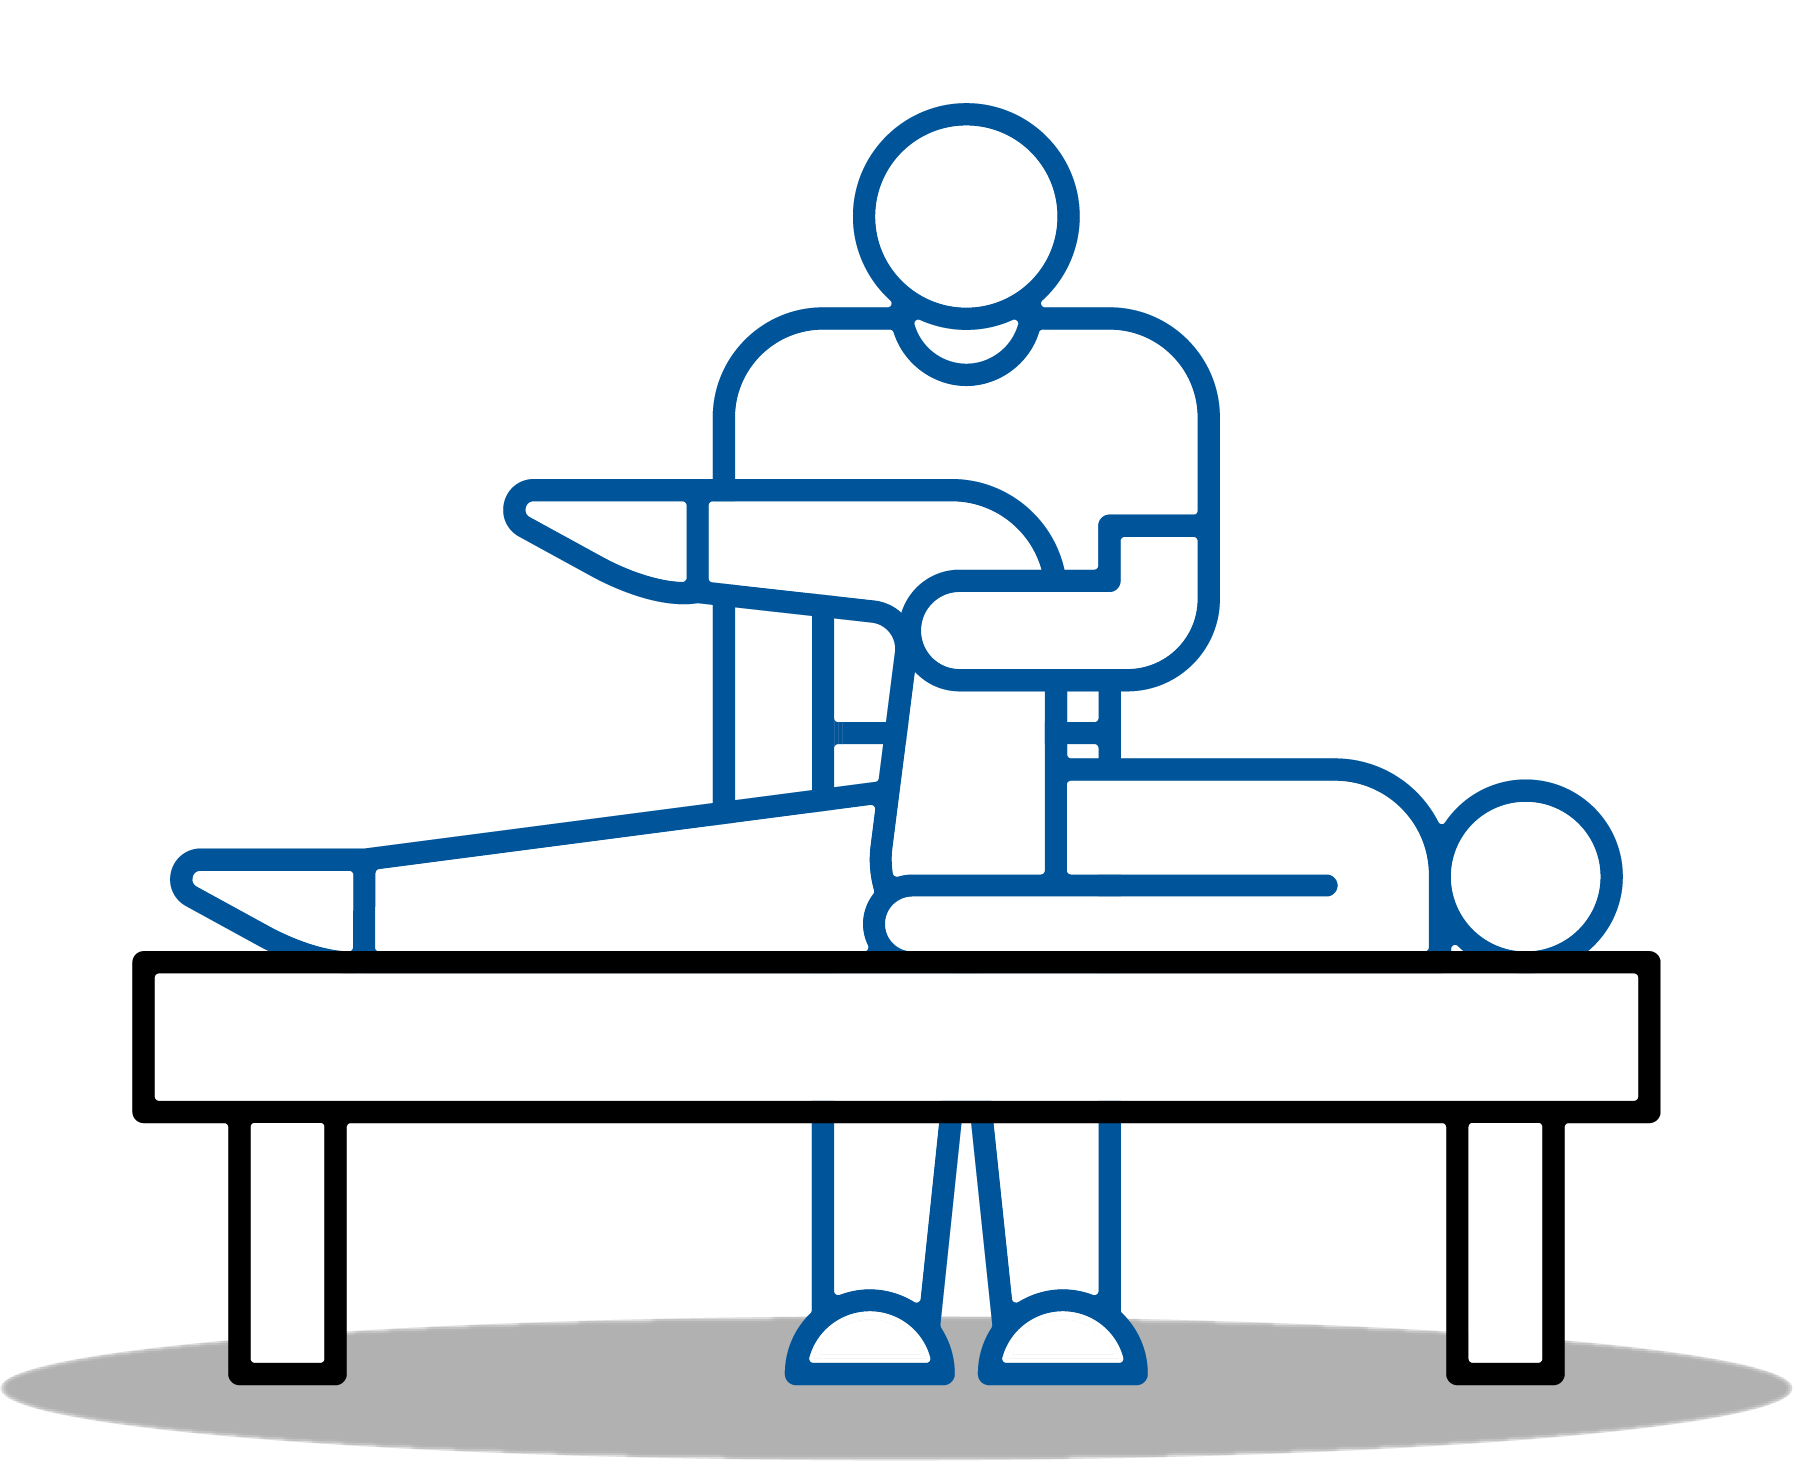 physiotherapy-outline.png